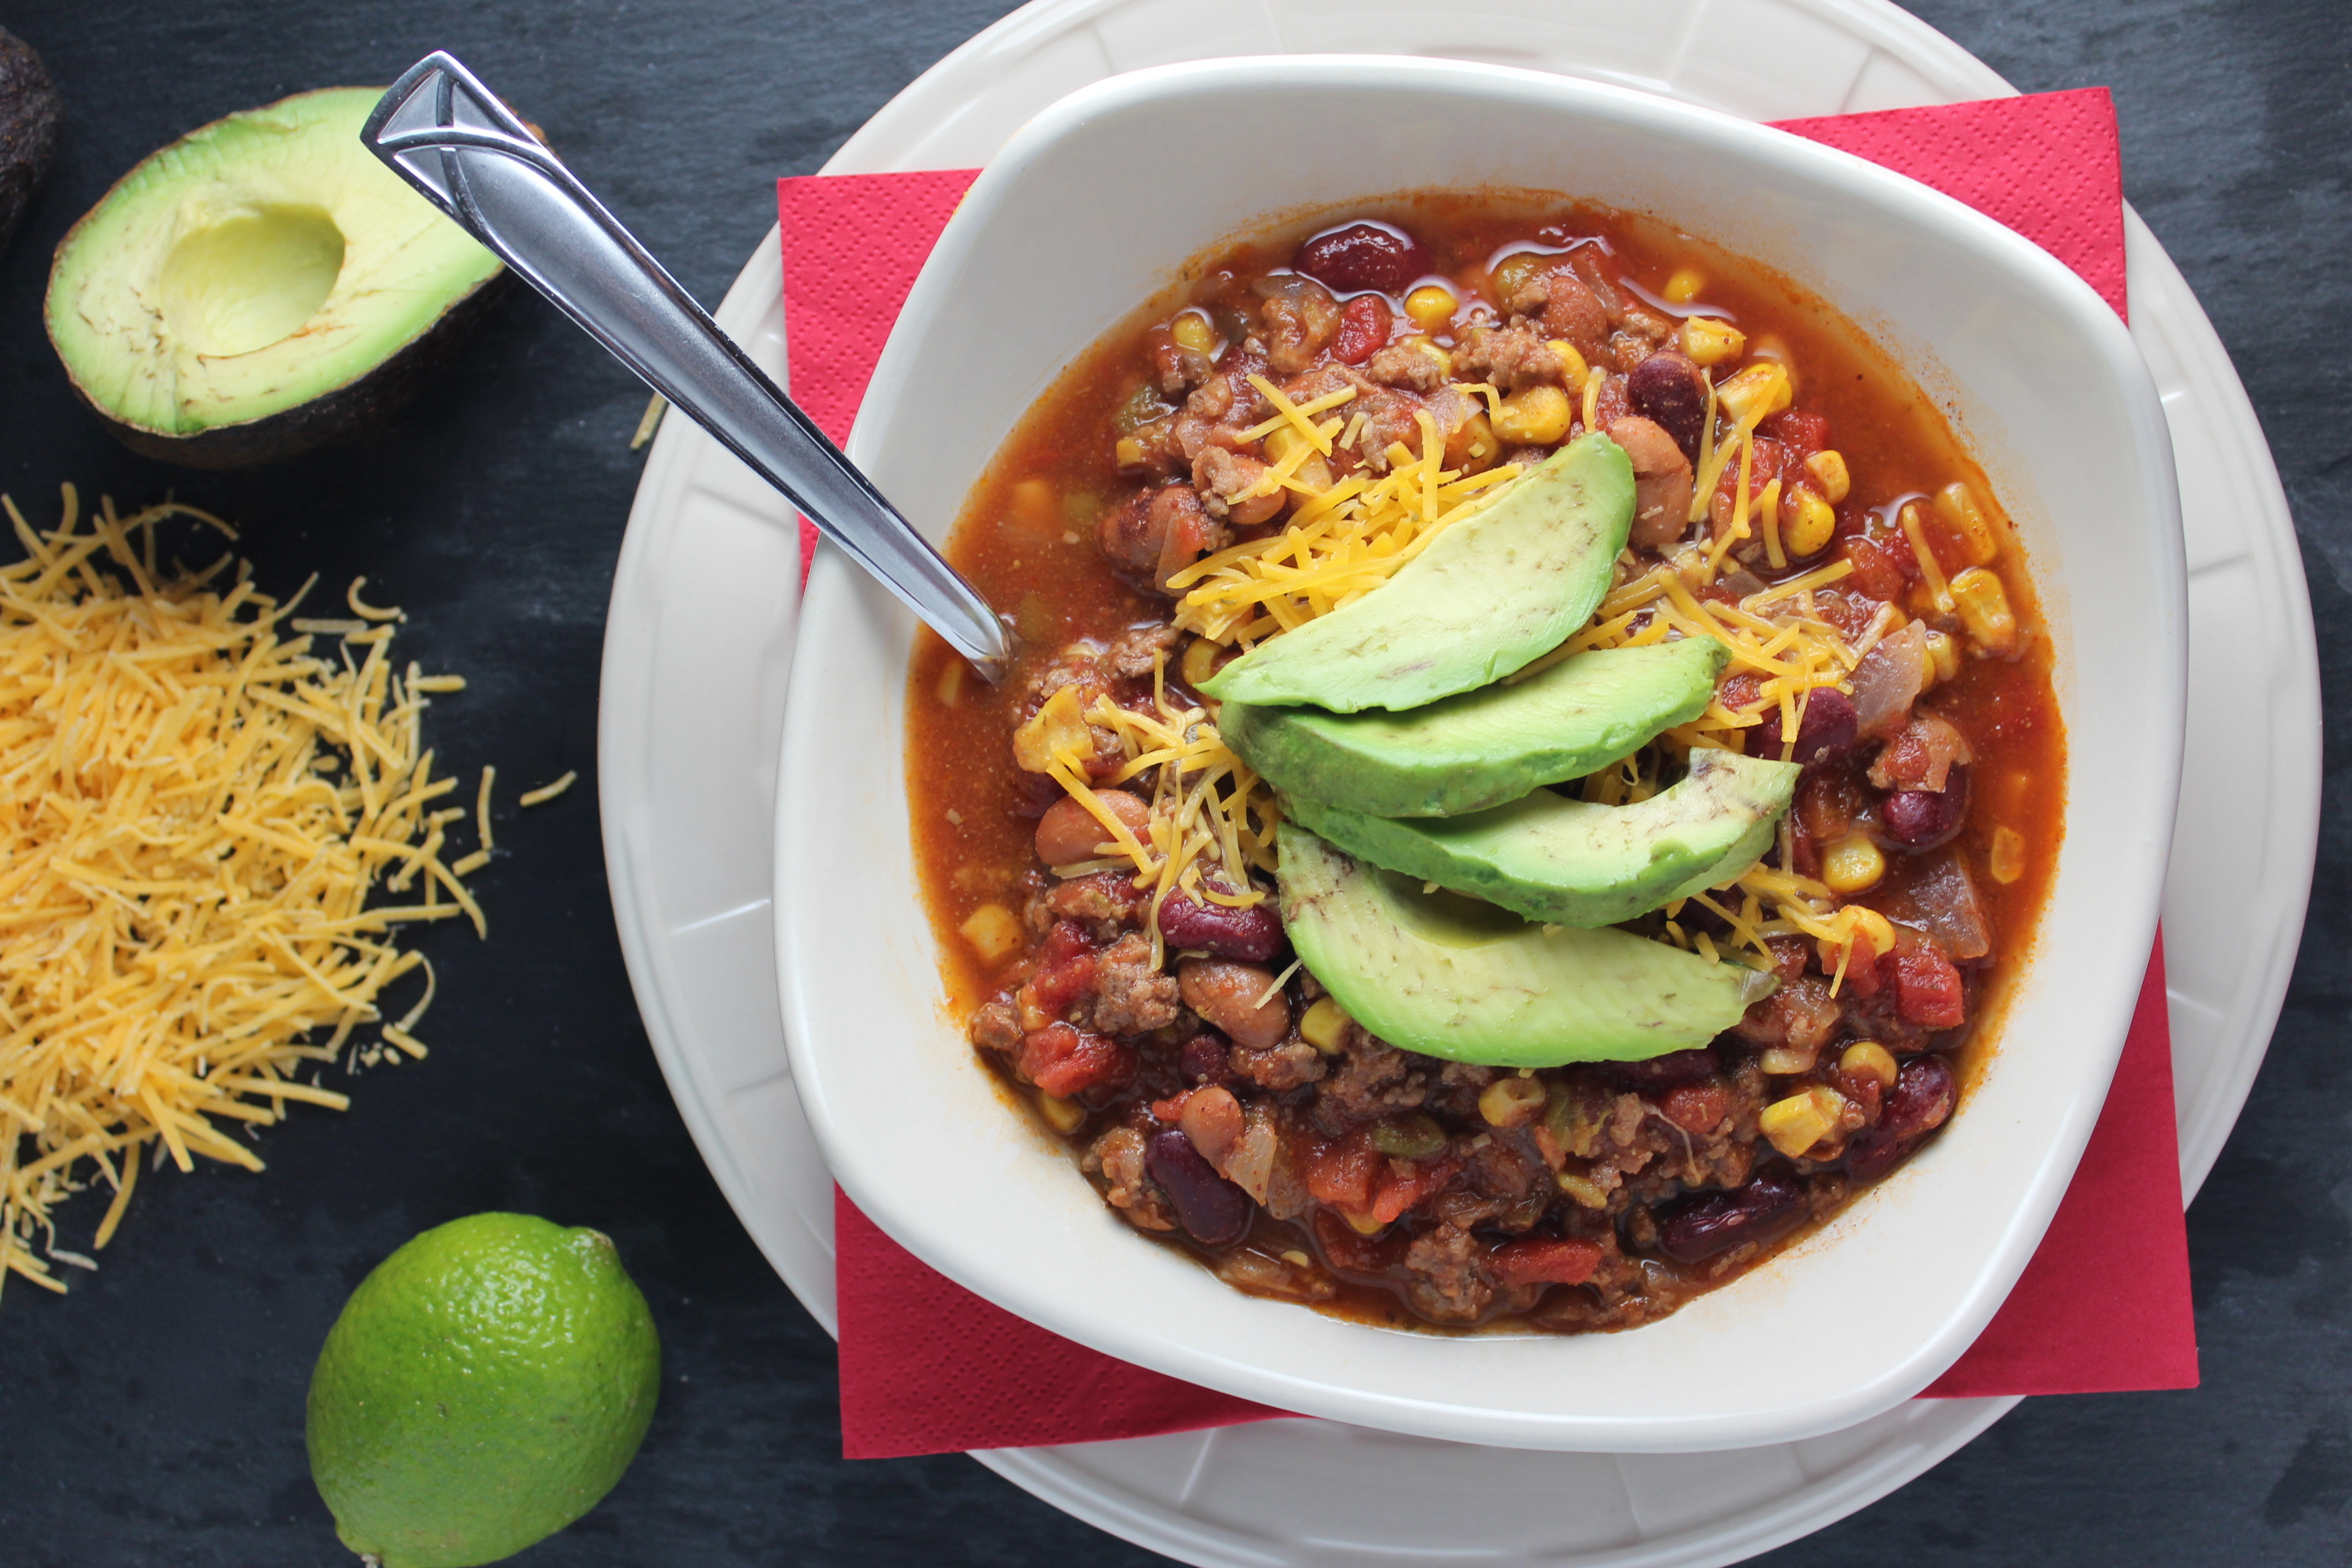 homemade taco seasoning, taco soup, spicy soup, avocado taco soup, recipes, food, ground beef taco soup, crock pot taco soup, crock pot recipes